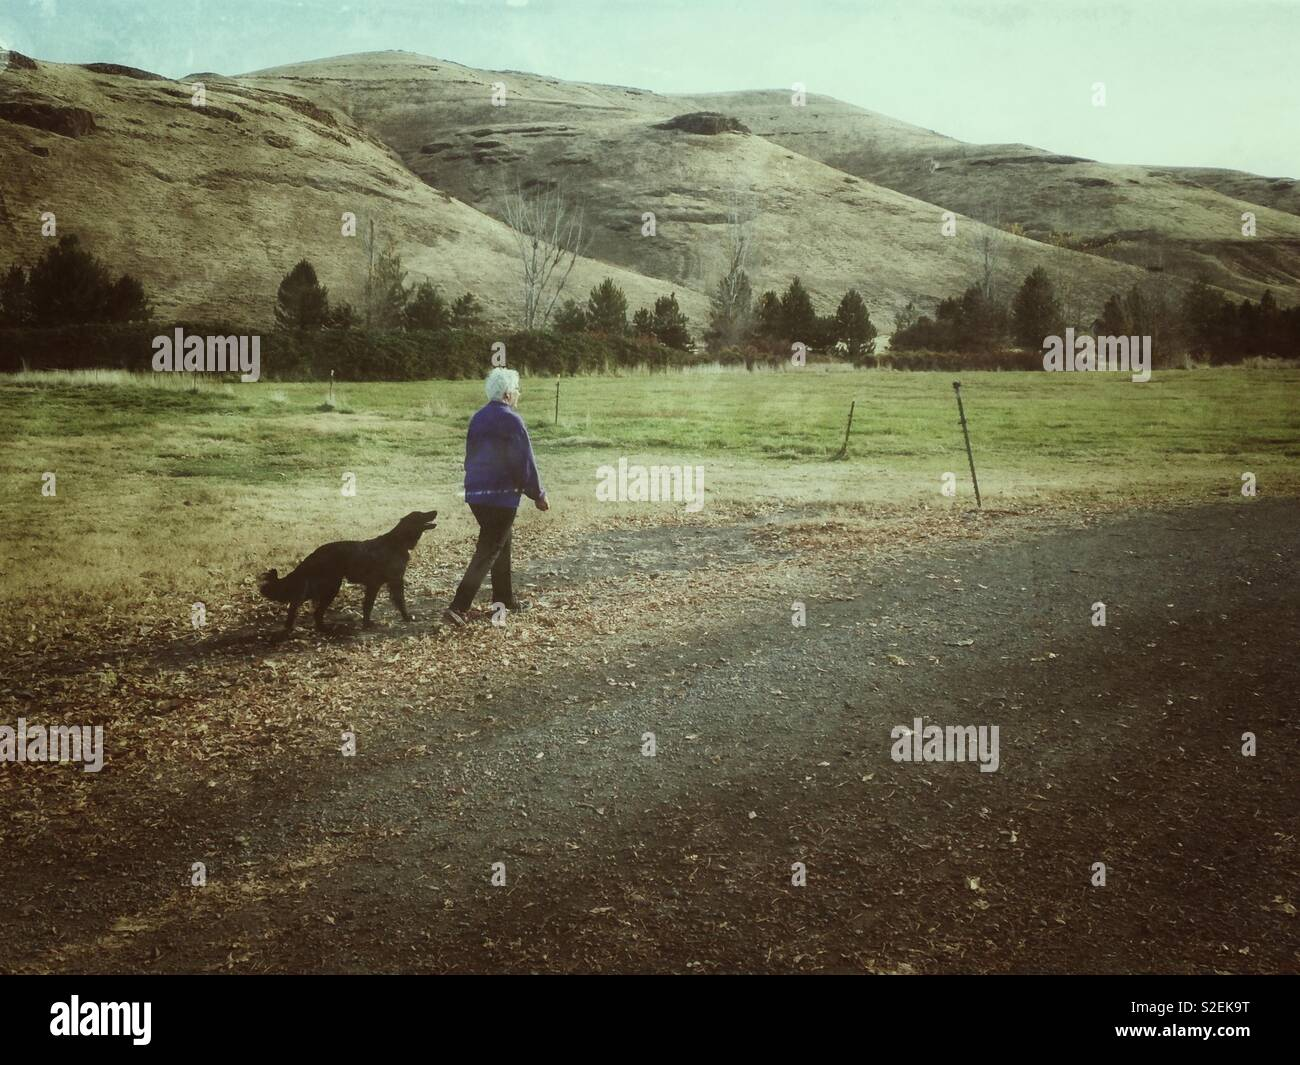 Middle aged woman walks near hills with her dog in eastern Washington - Stock Image